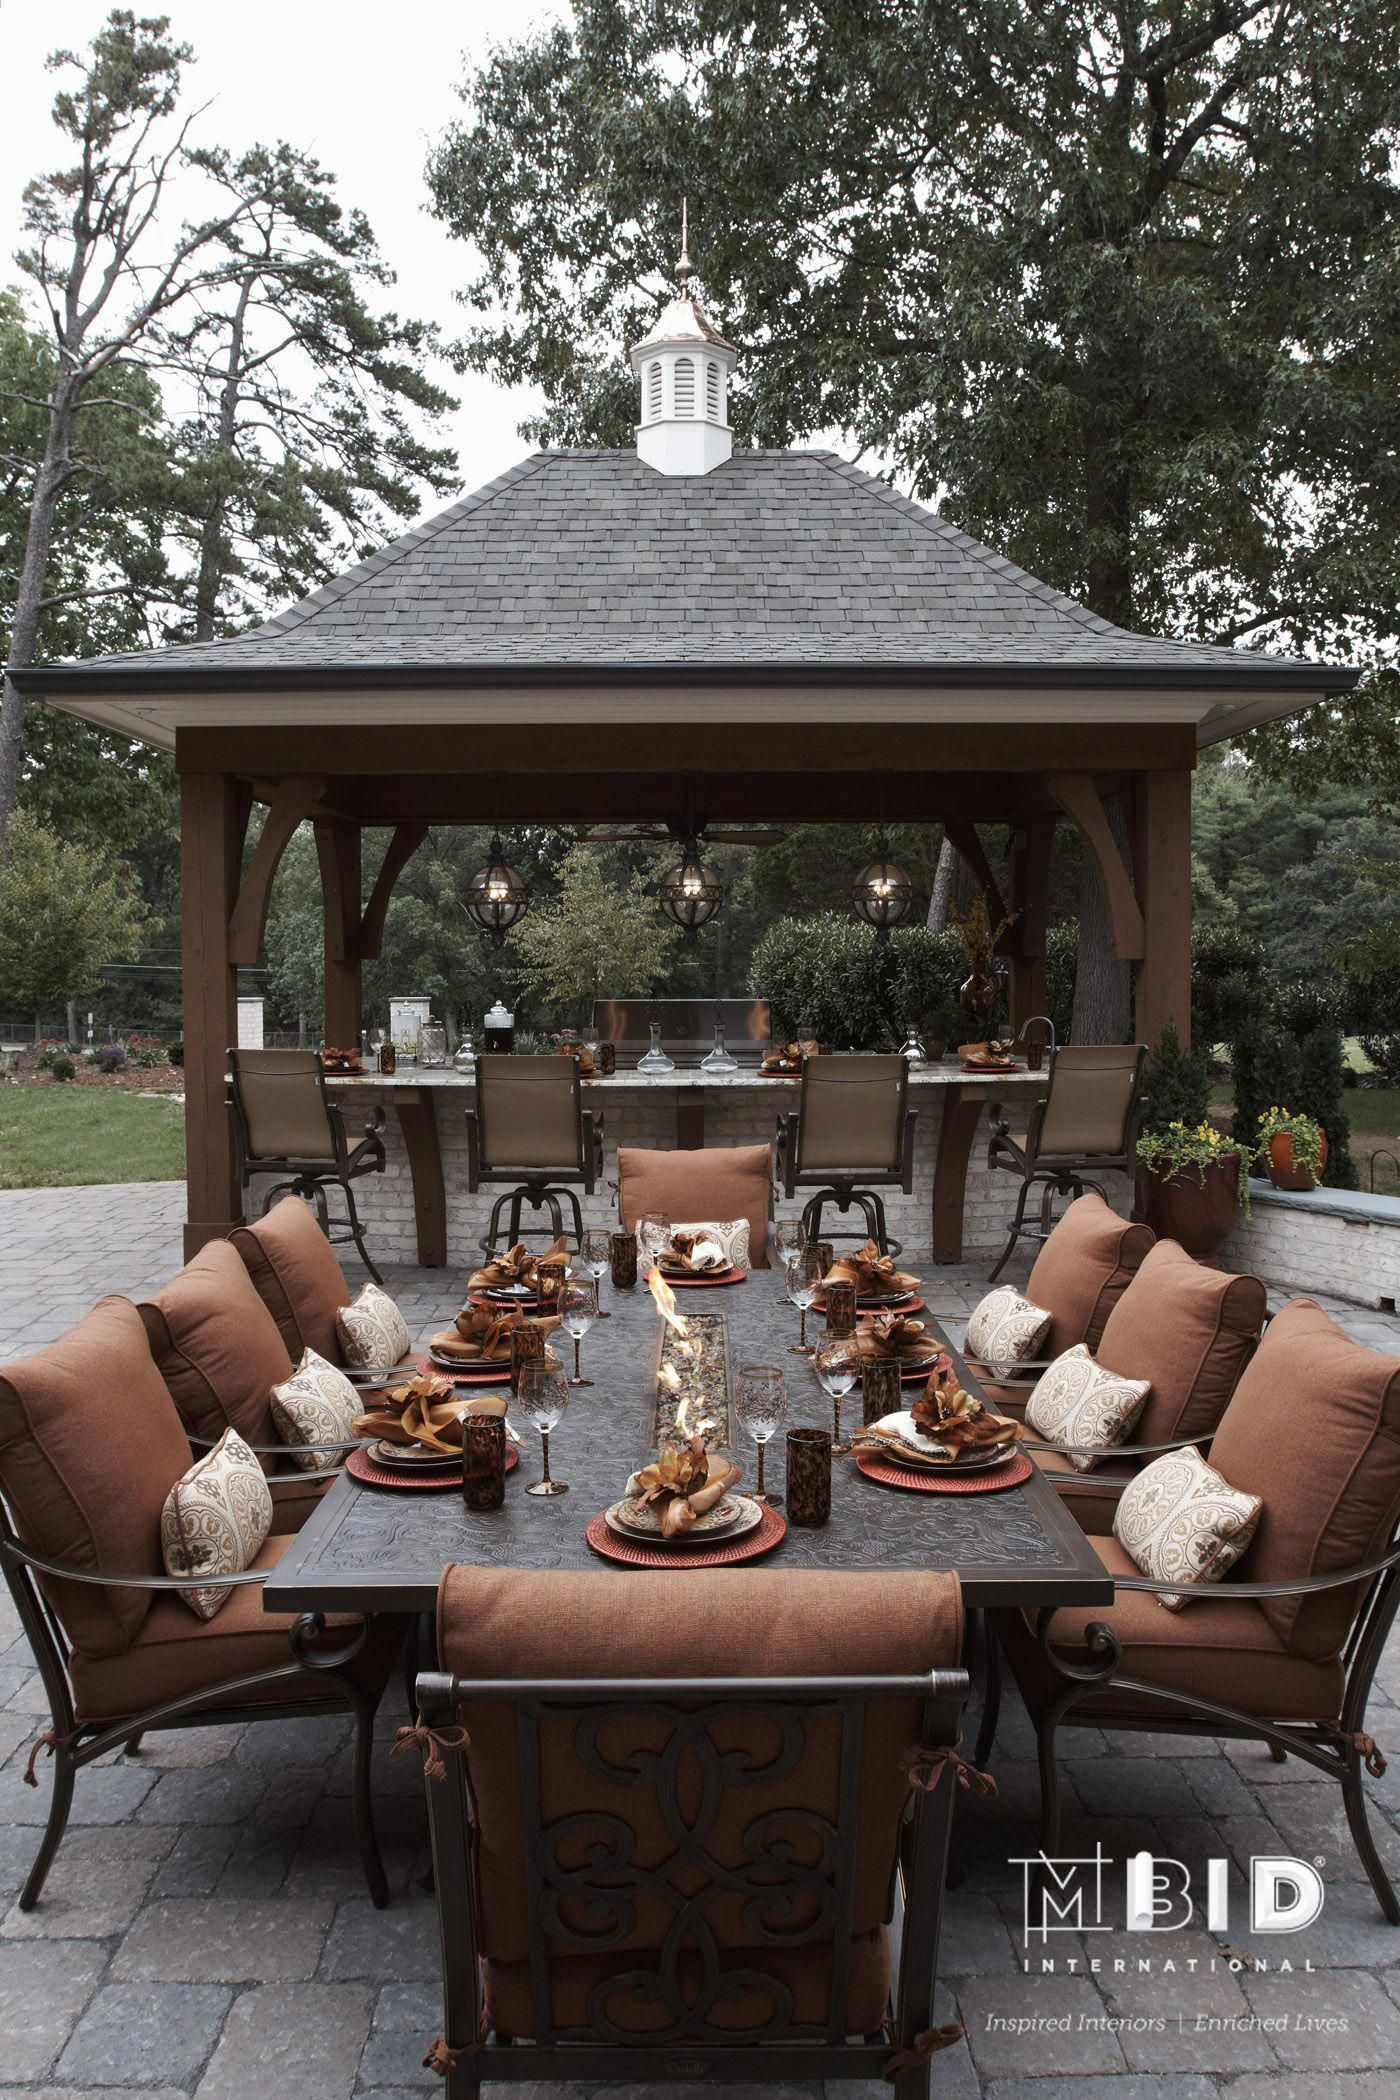 Garden fire features  Greensboro NC Outdoor Kitchen Design The large dining table has a